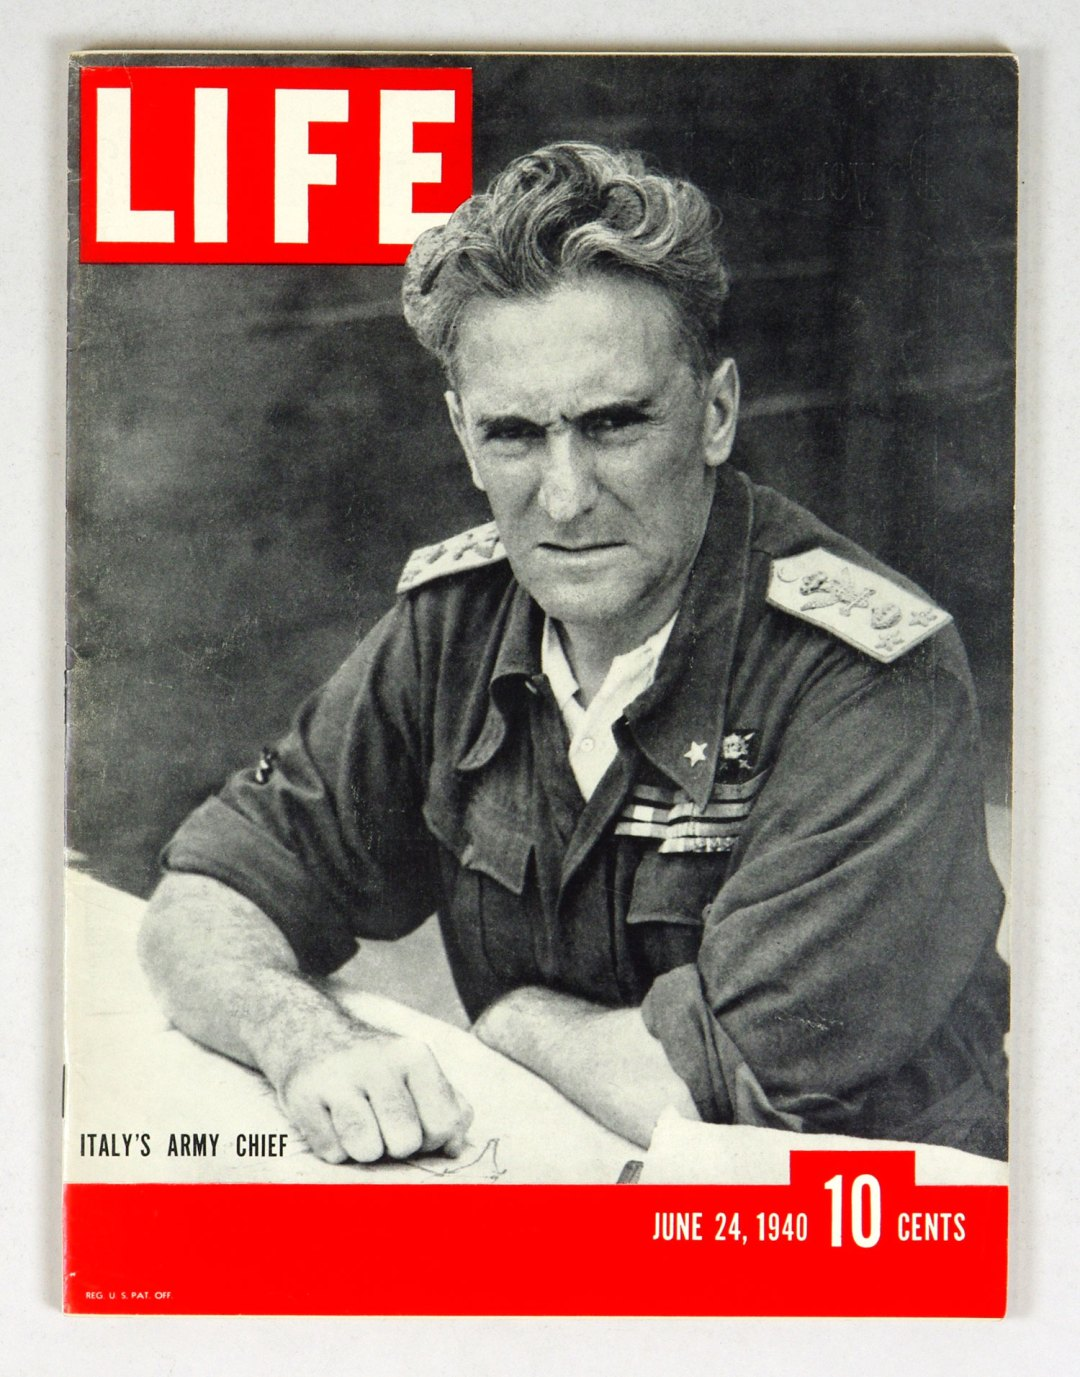 LIFE Magazine 1940 June 24 Italy's Army Chief